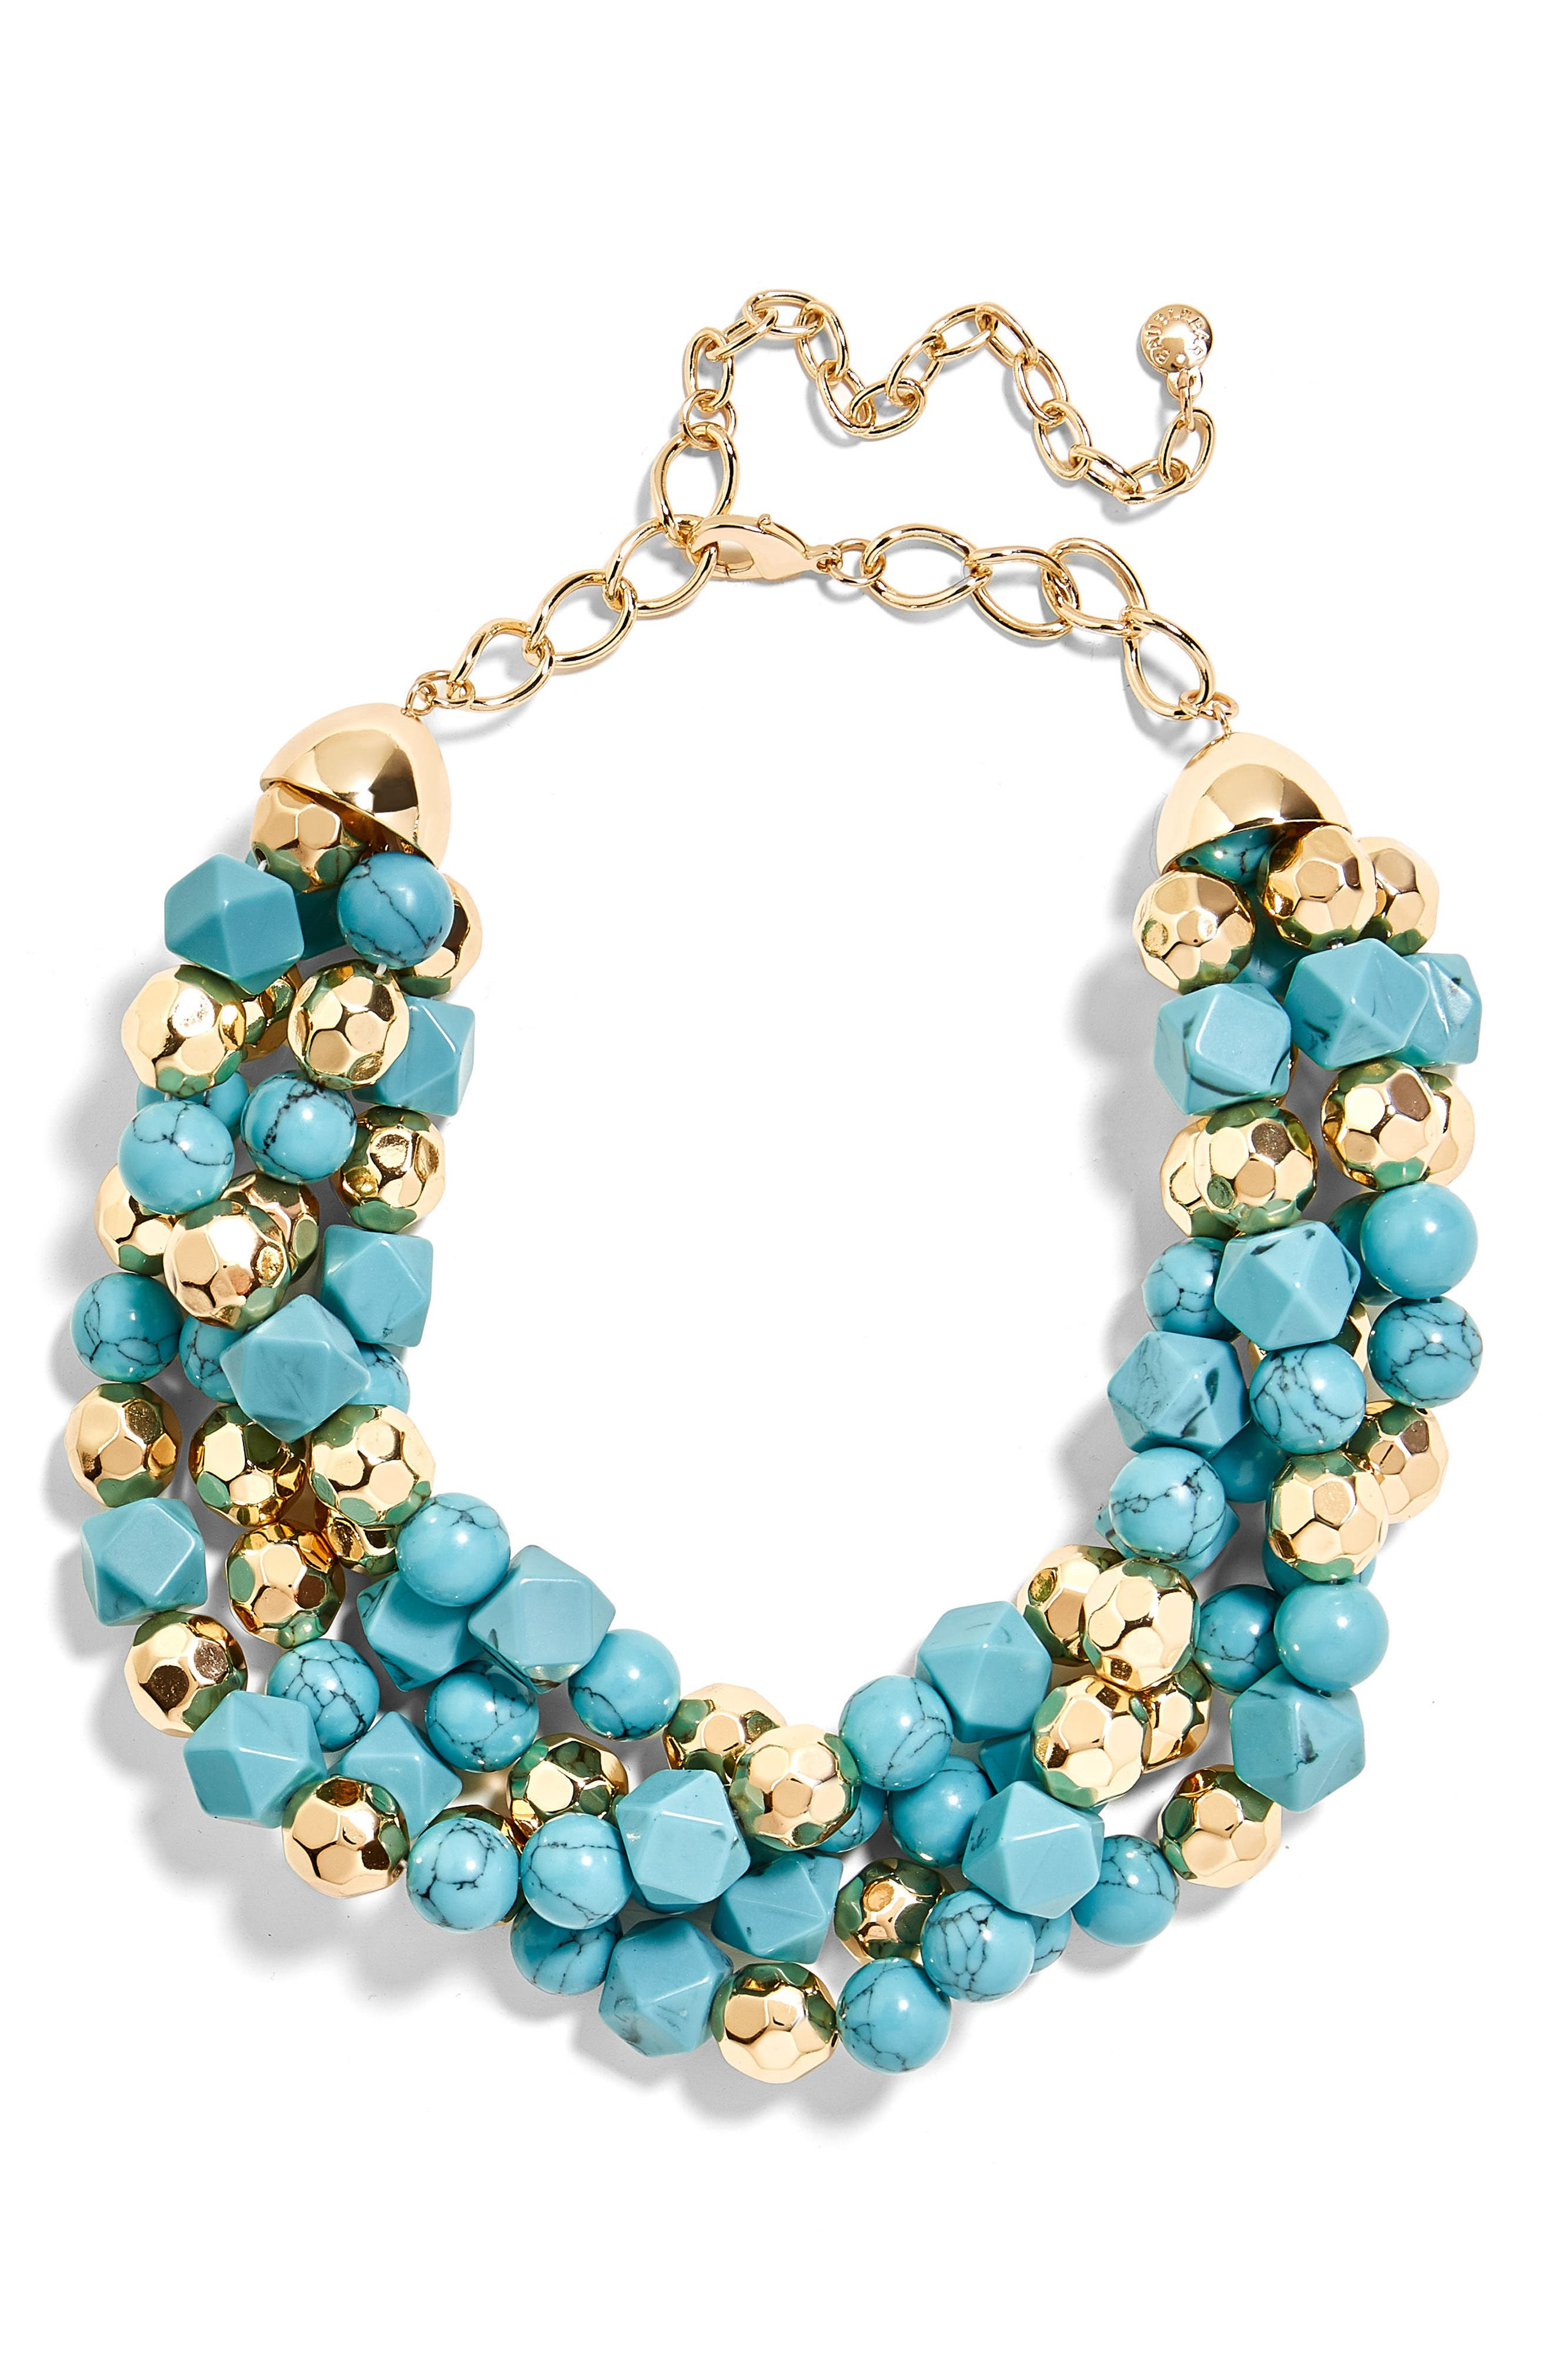 Cytherea Statement Necklace,                         Main,                         color, Turquoise